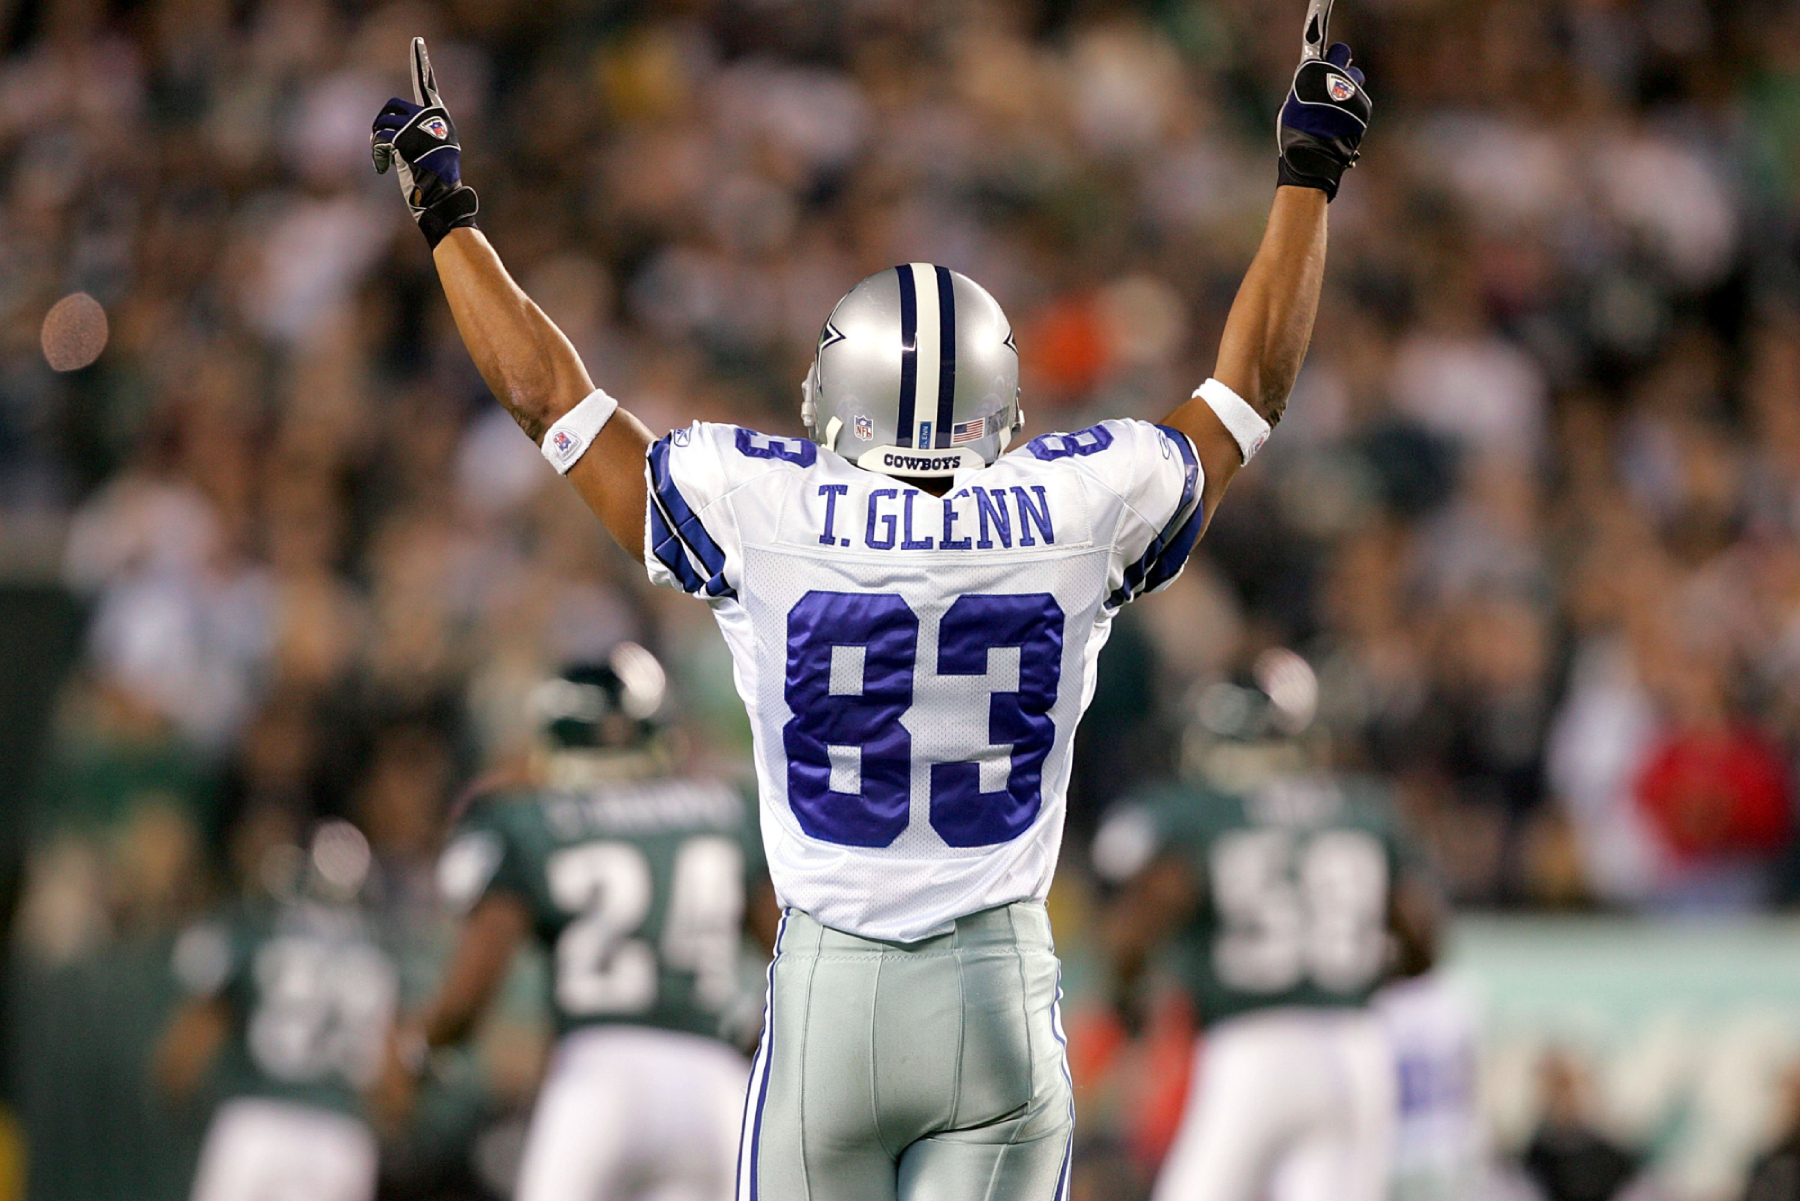 After succeeding at Ohio State, Terry Glenn had a nice career with the Dallas Cowboys and the Patriots. He tragically died too soon, though.